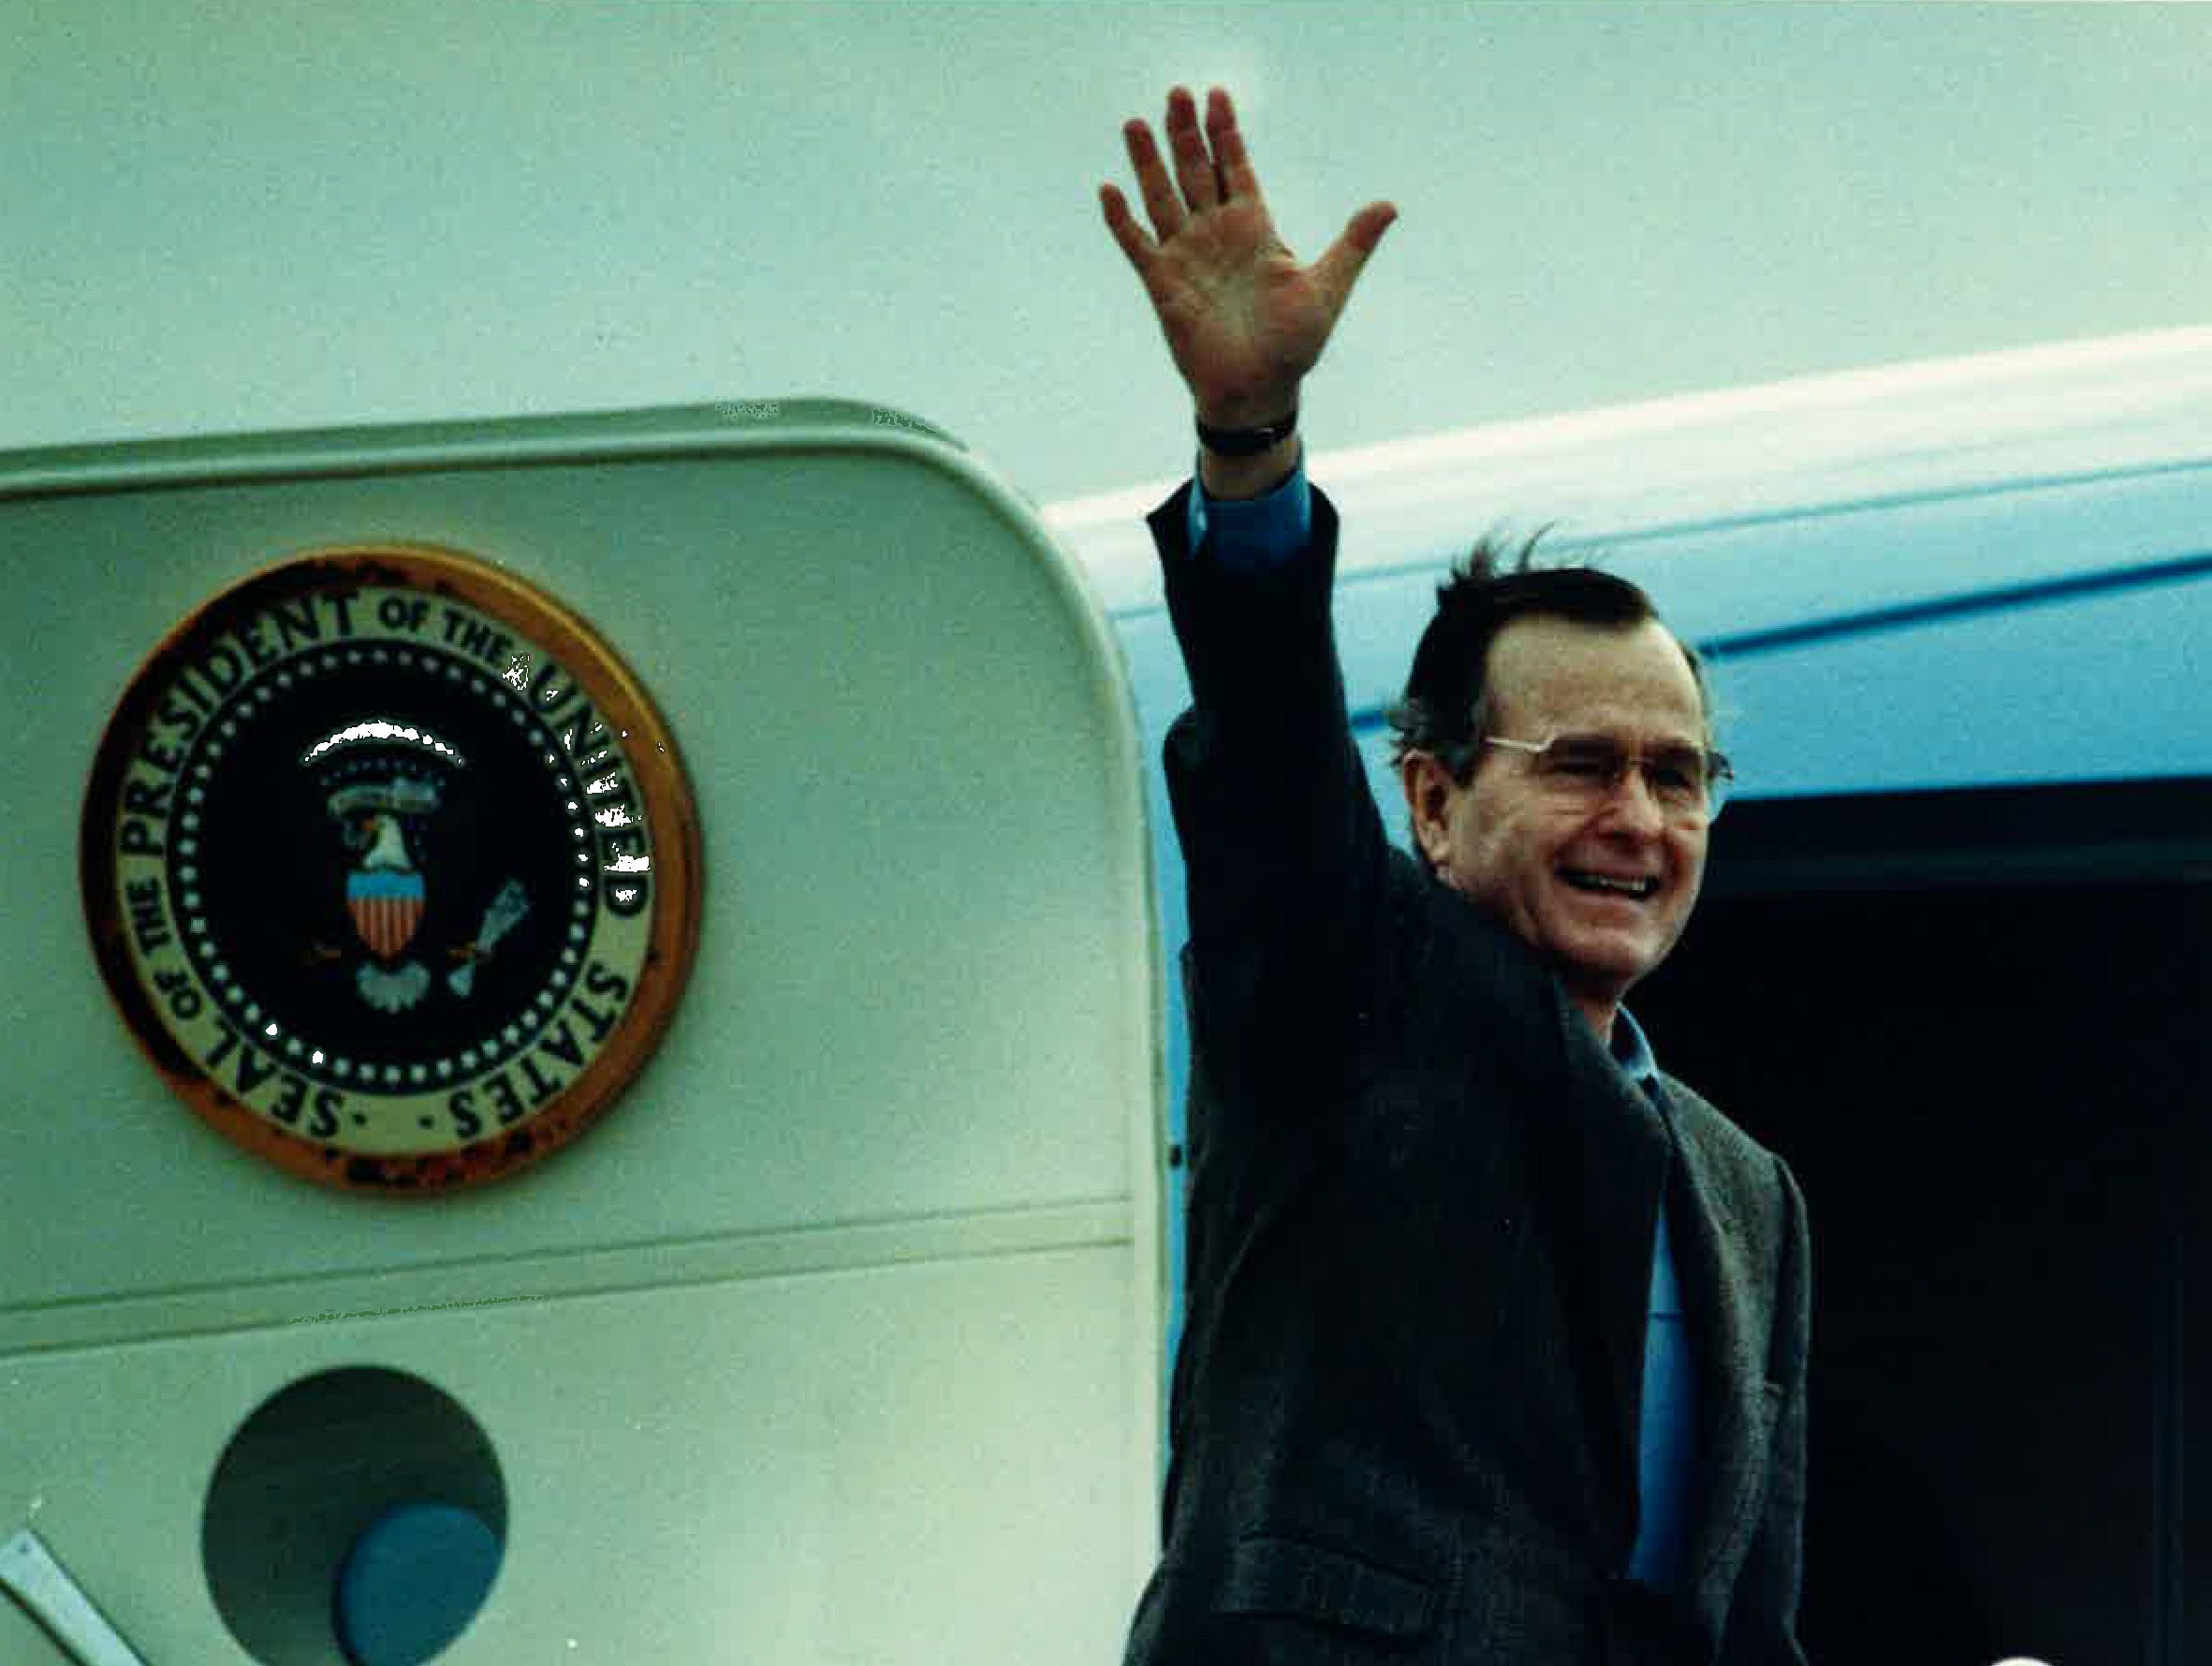 President George H.W. Bush waves to the crowd at NAS-Chase Field before departing for Houston on Air Force One. Bush had been quail hunting and fishing in the area in December 1989.